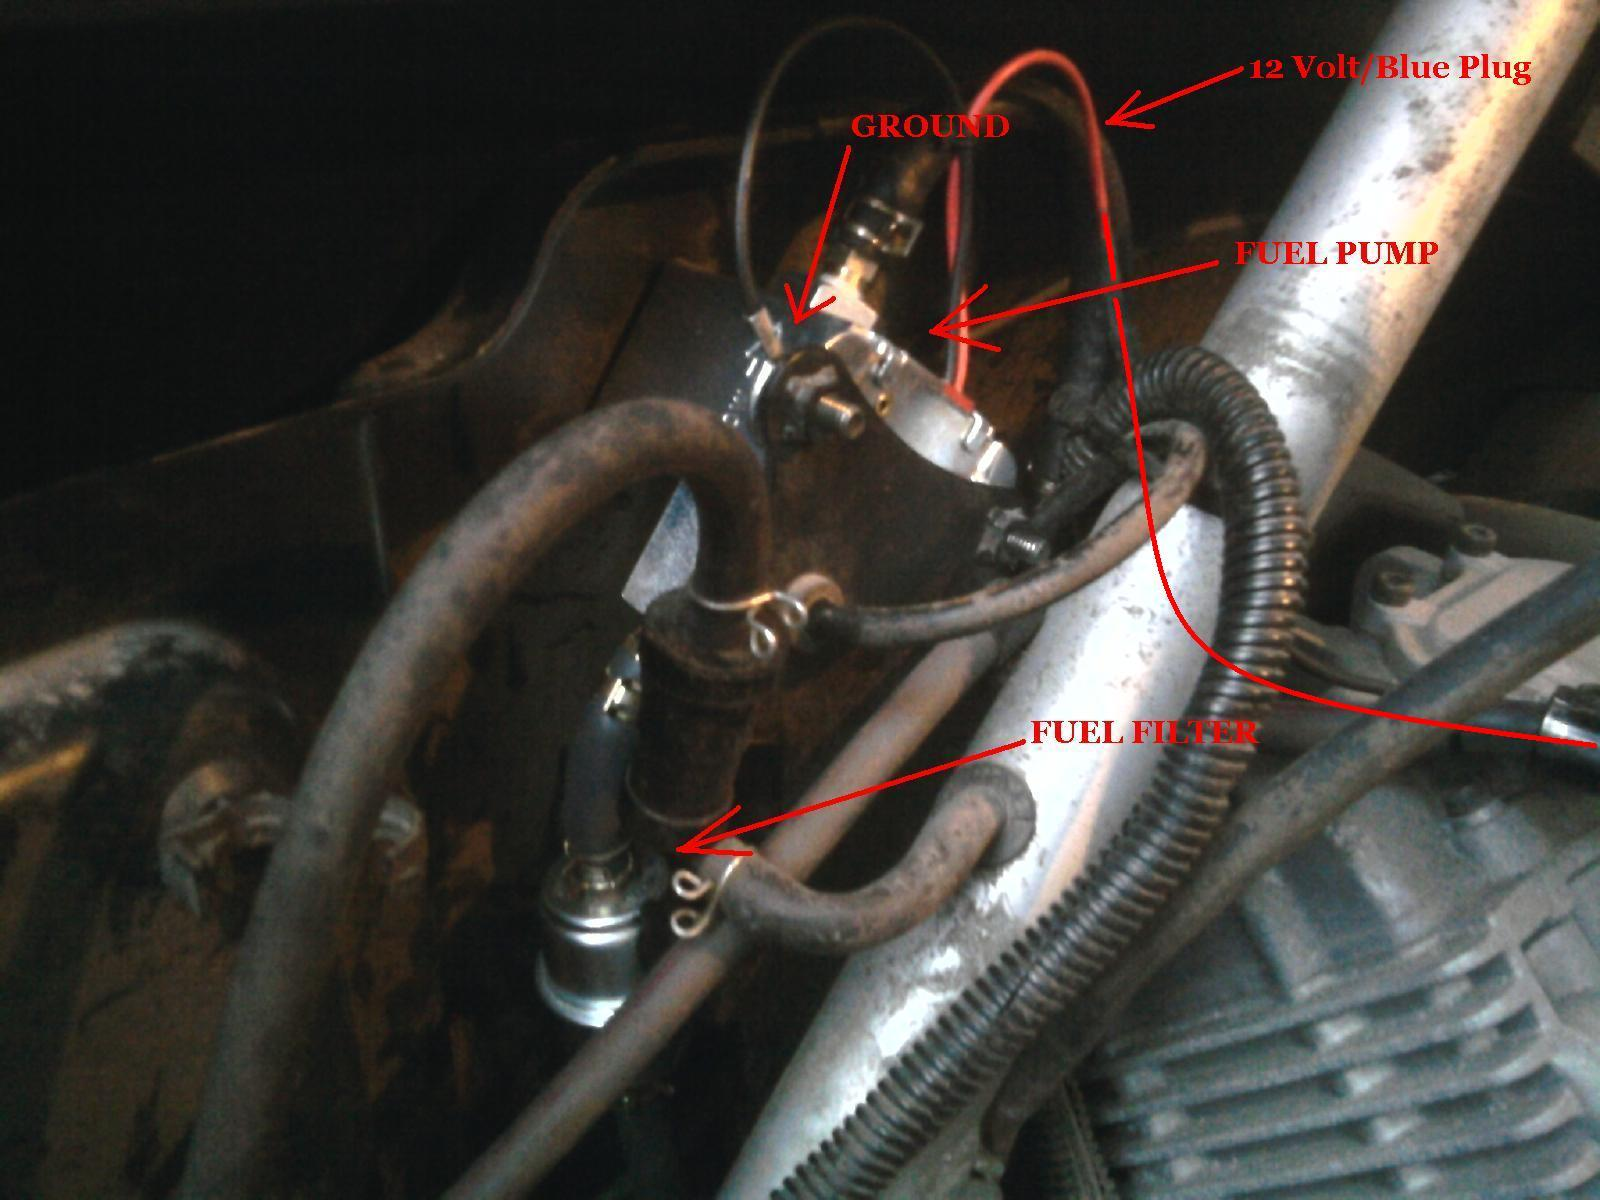 Rhino 700 Fuel Filter Wiring Diagram 2008 Schematic 07 Libraryclick Image For Larger Version Name Photo26441